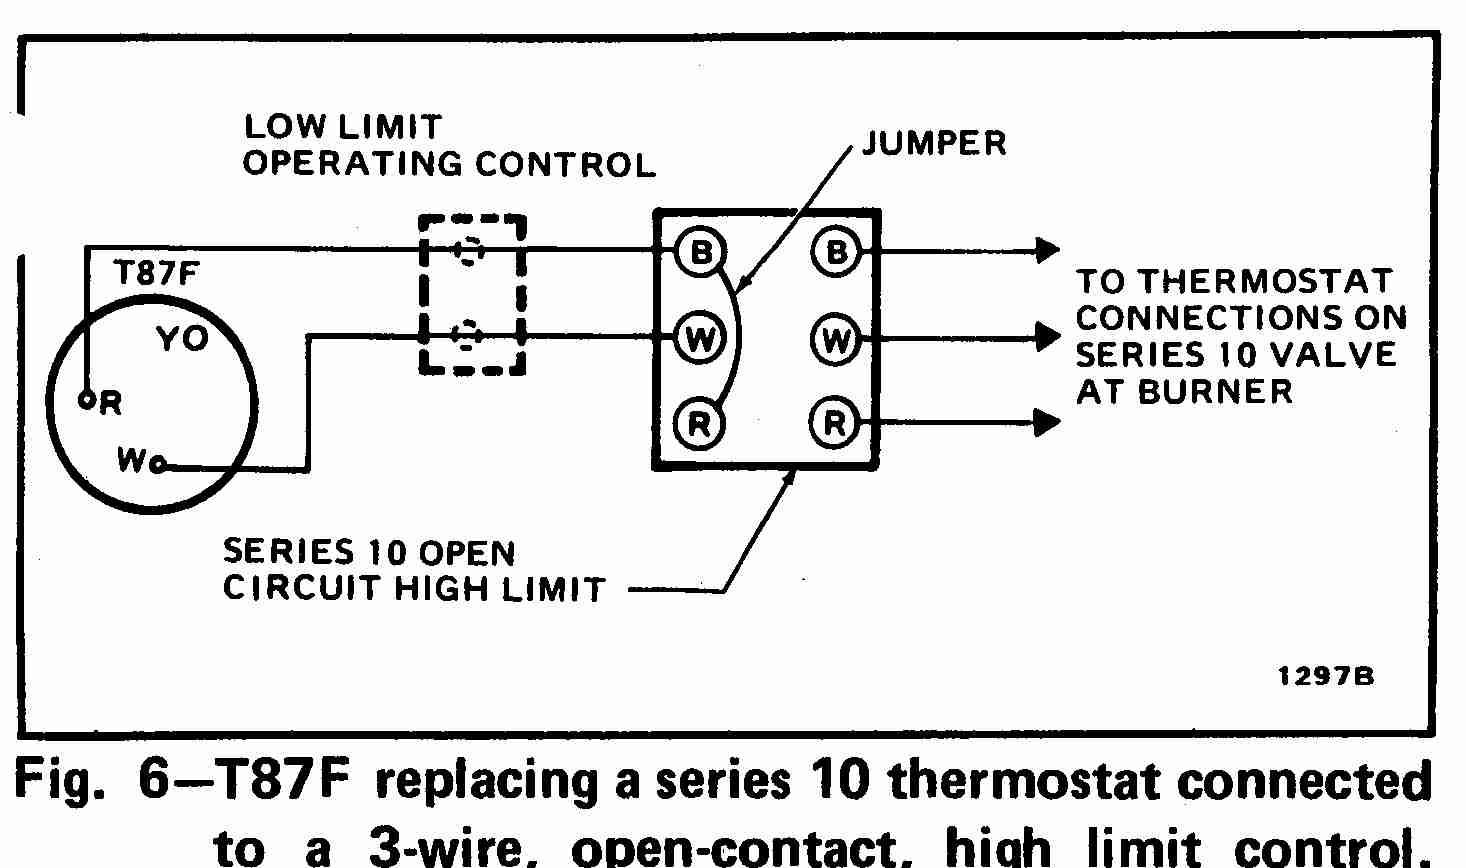 TT_T87F_0002_3WHL_DJF room thermostat wiring diagrams for hvac systems imit boiler thermostat wiring diagram at bayanpartner.co